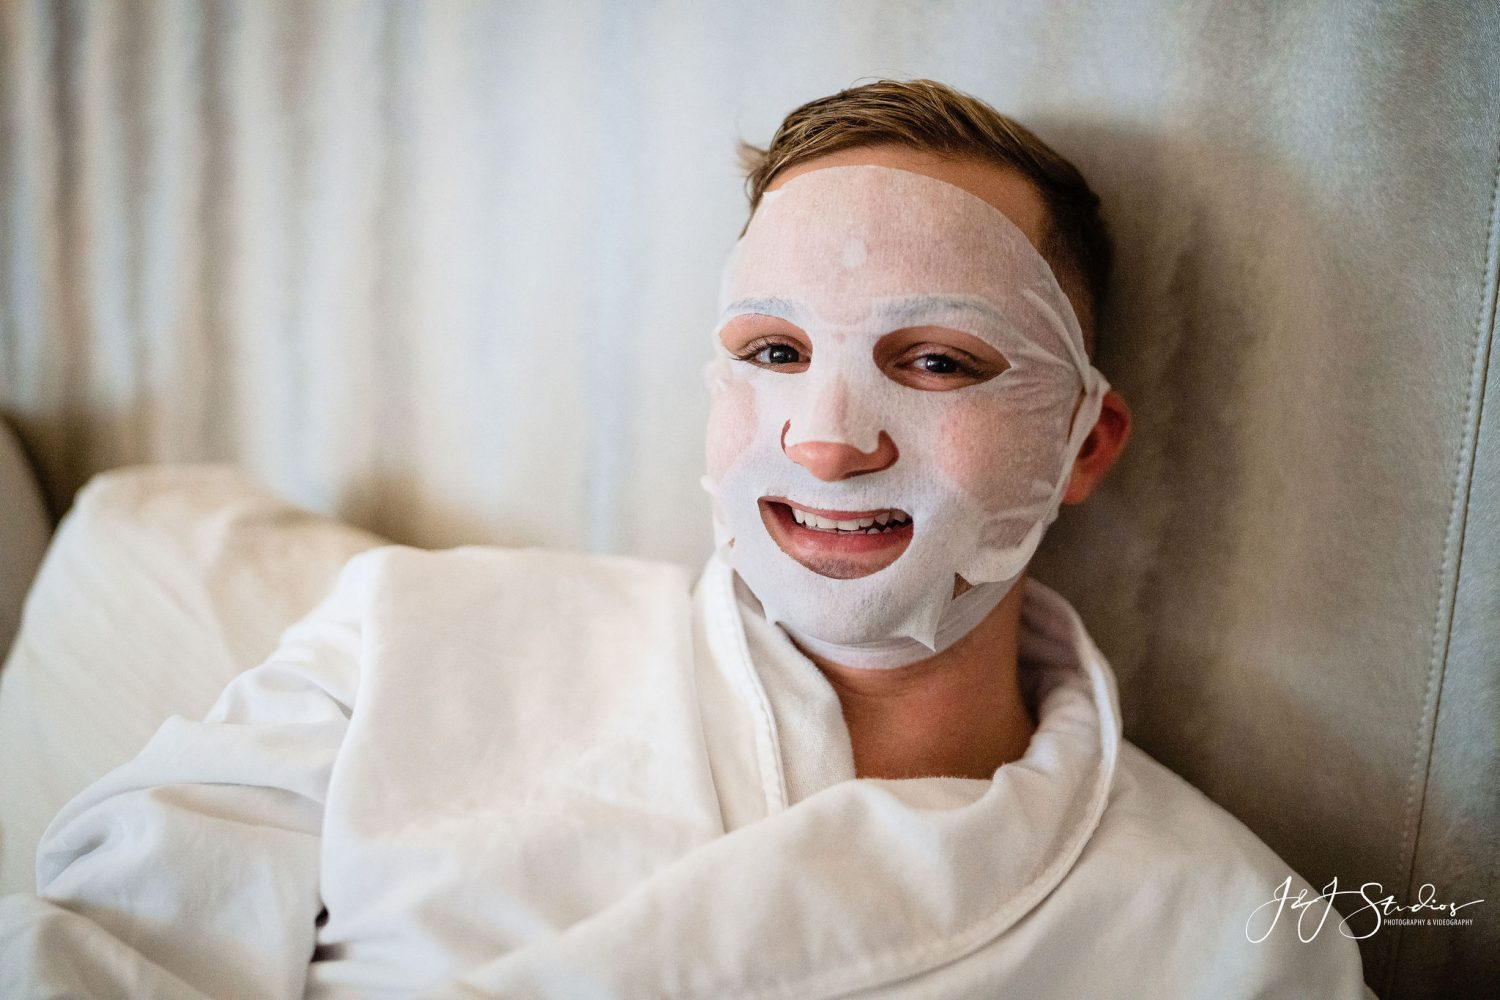 face mask on man spa